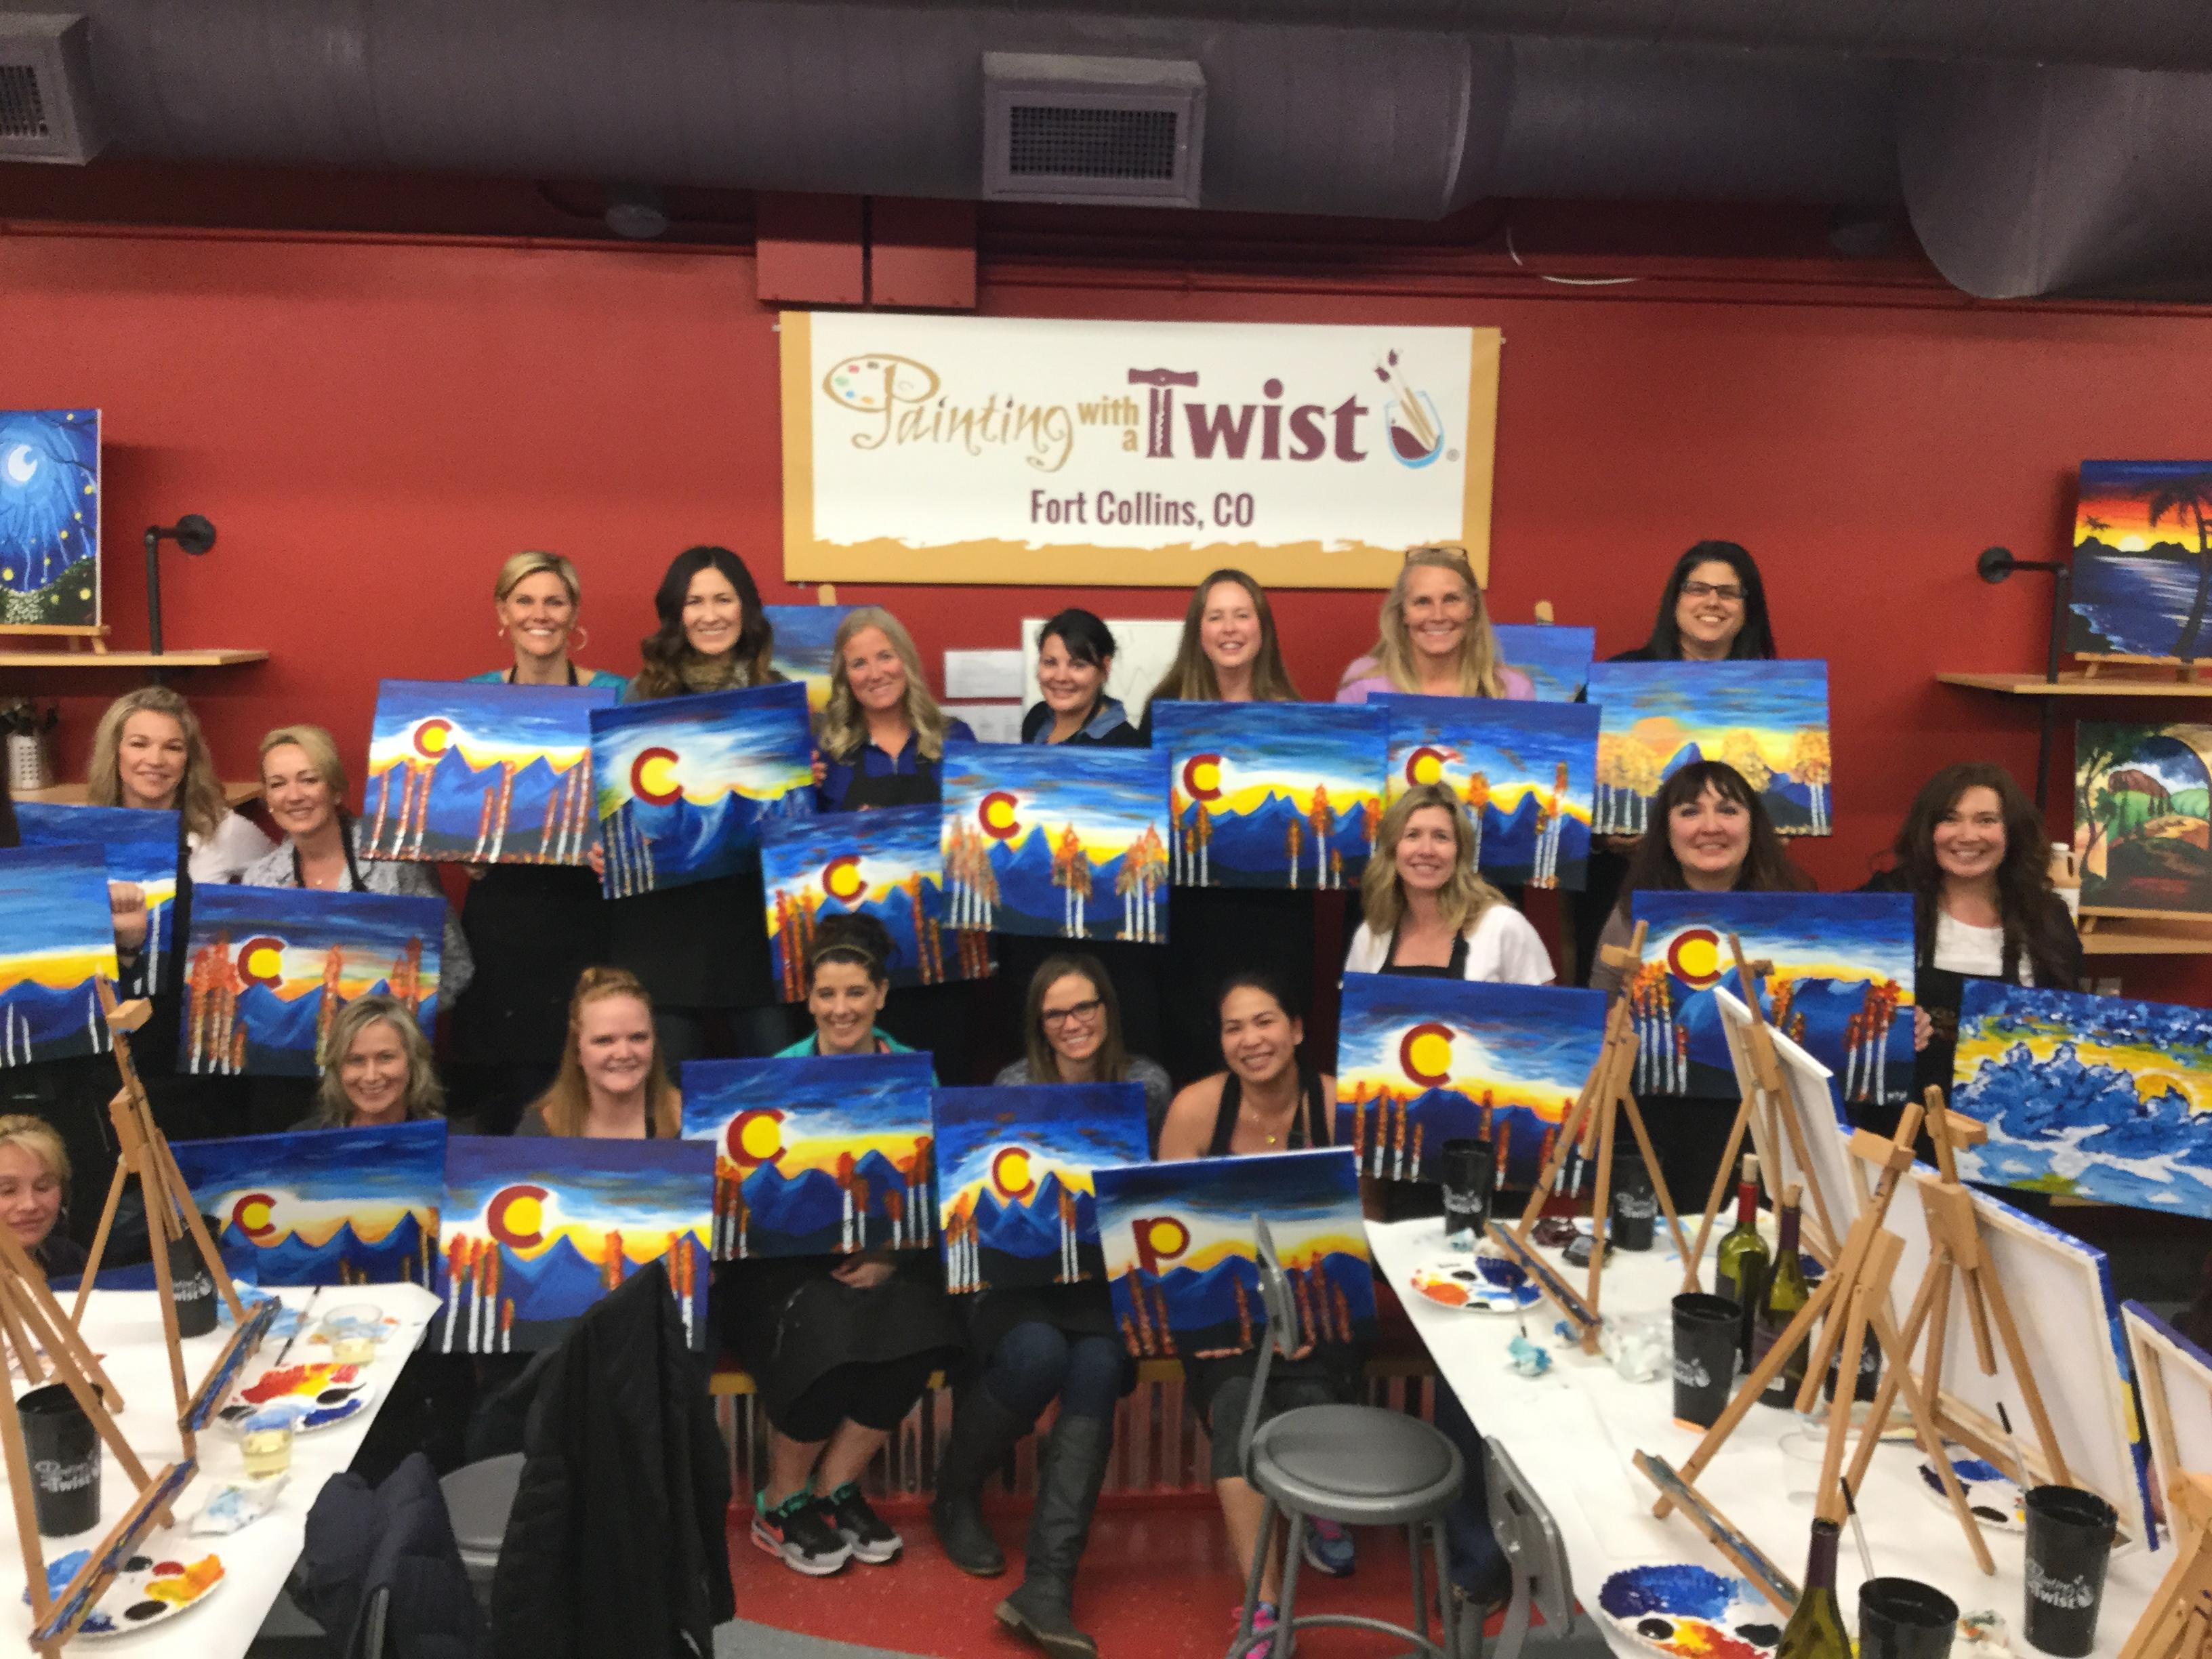 Painting with a twist coupons near me in fort collins for Painting with a twist chicago